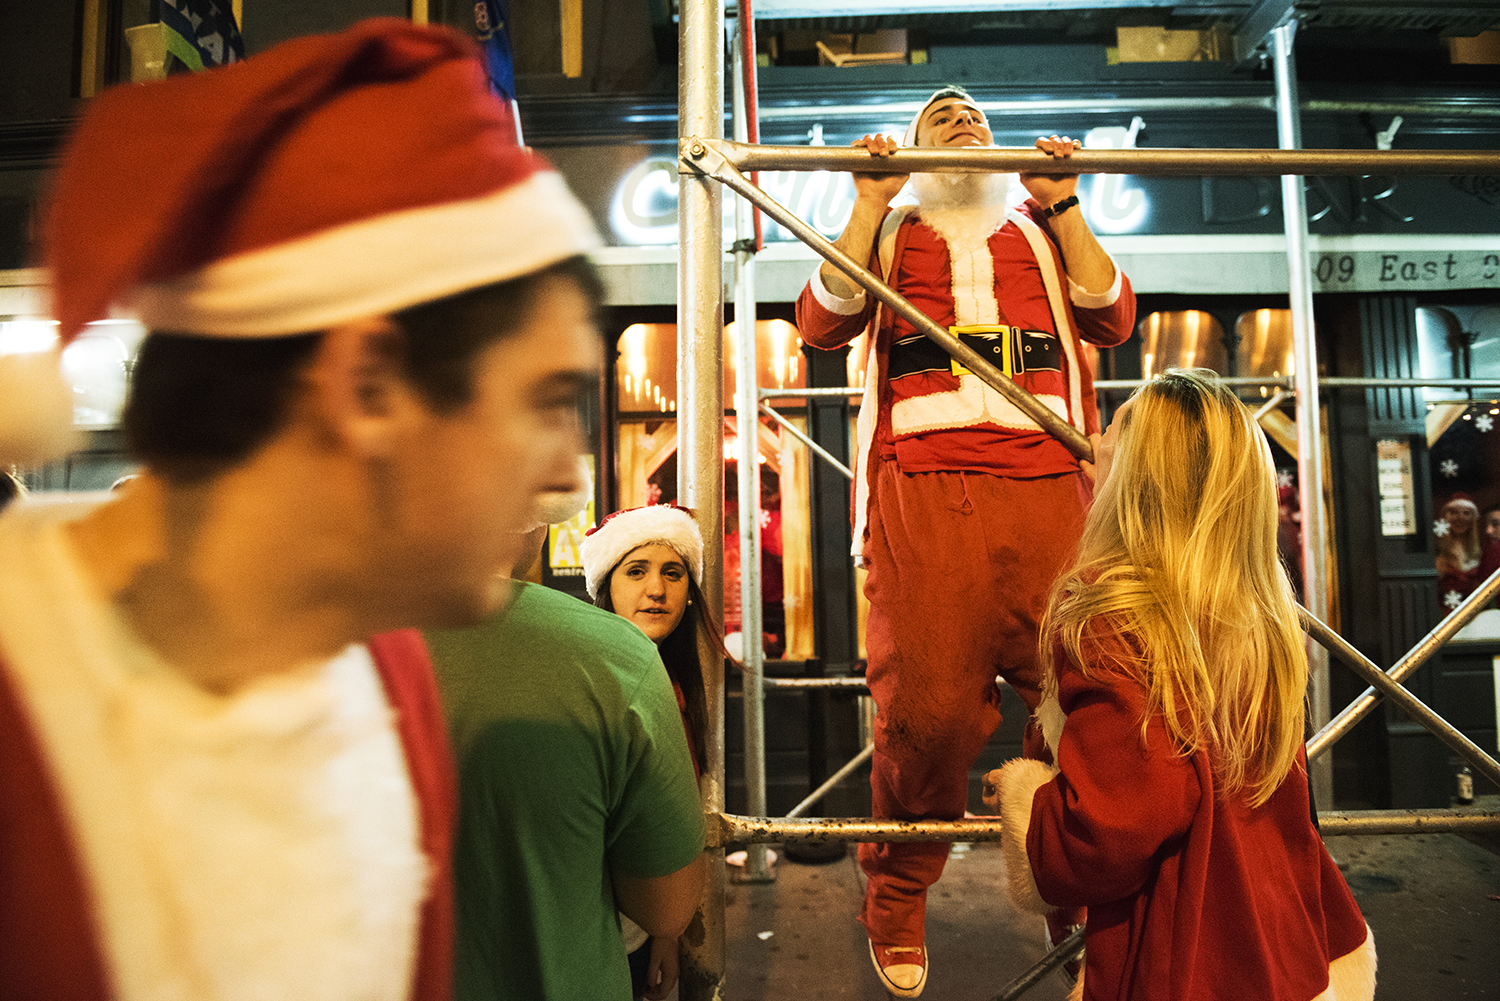 People in Santa Costume for SantaCon. Manhattan, NY. 2015  ©    Go Nakamura     photography